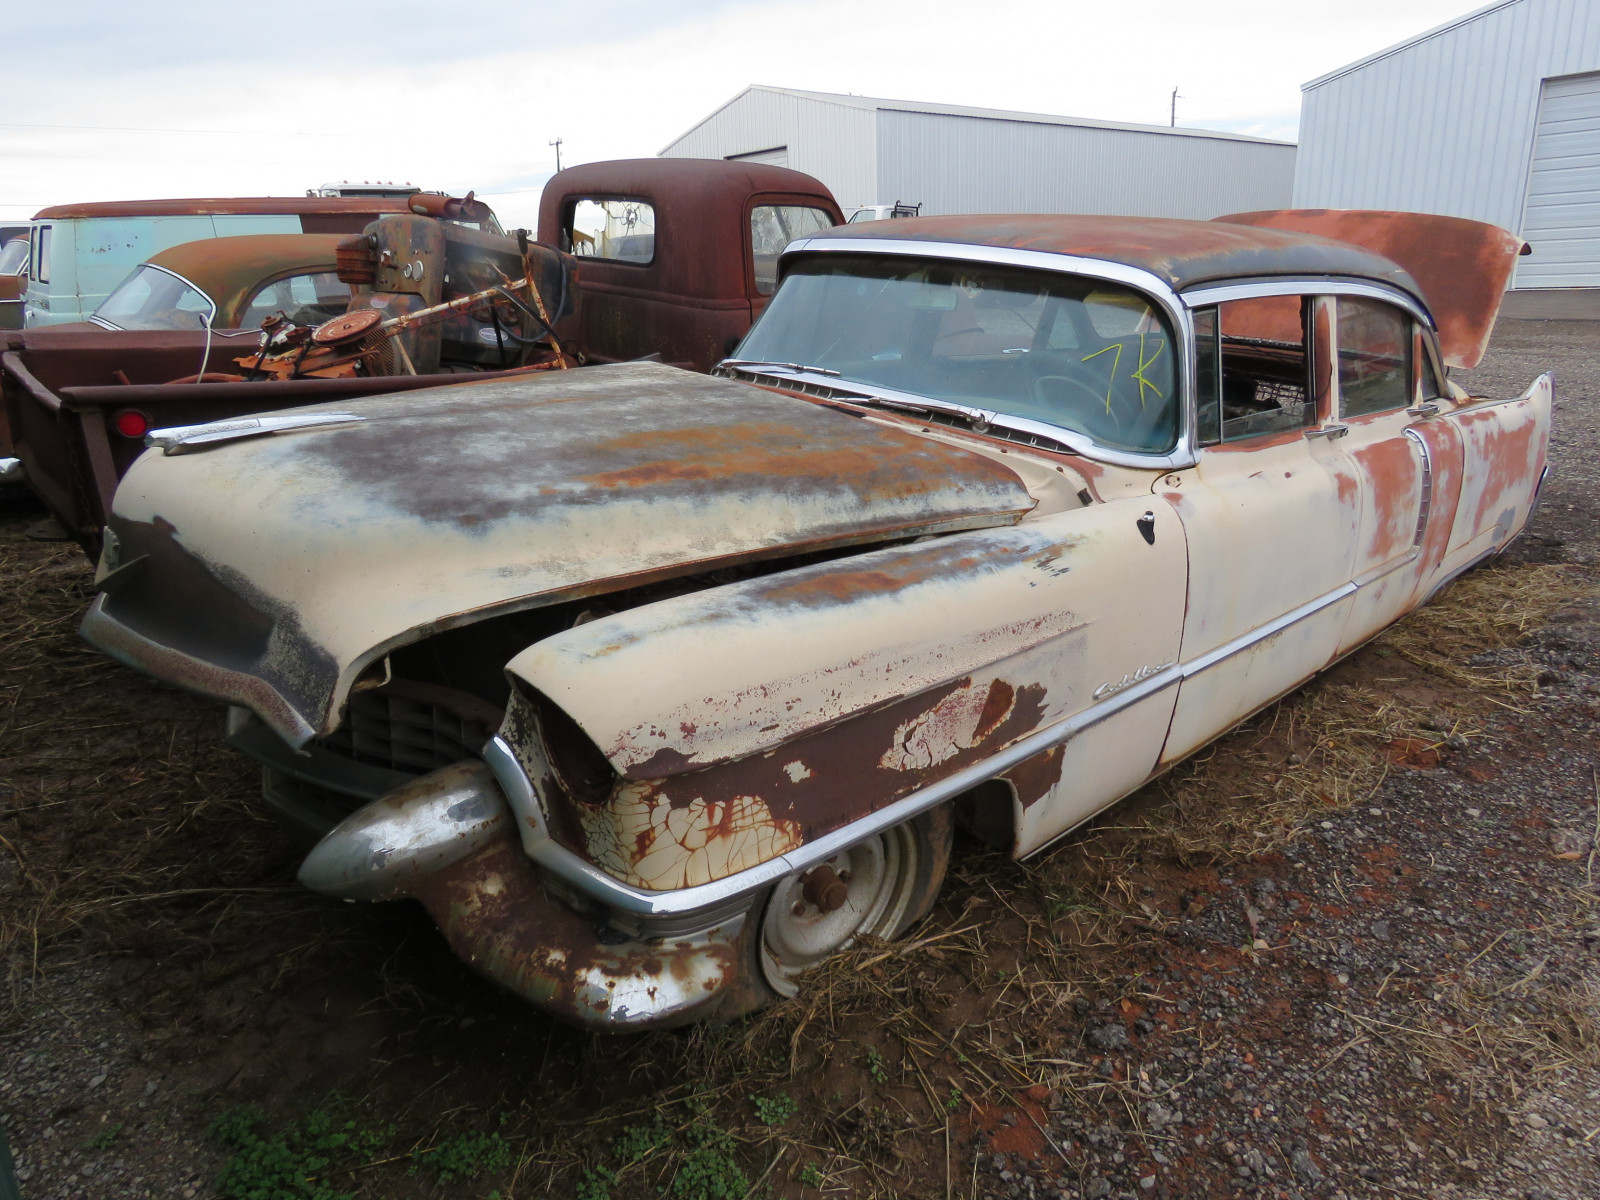 1955 Cadillac Series 62 4dr Sedan 55-62124192 - Image 1